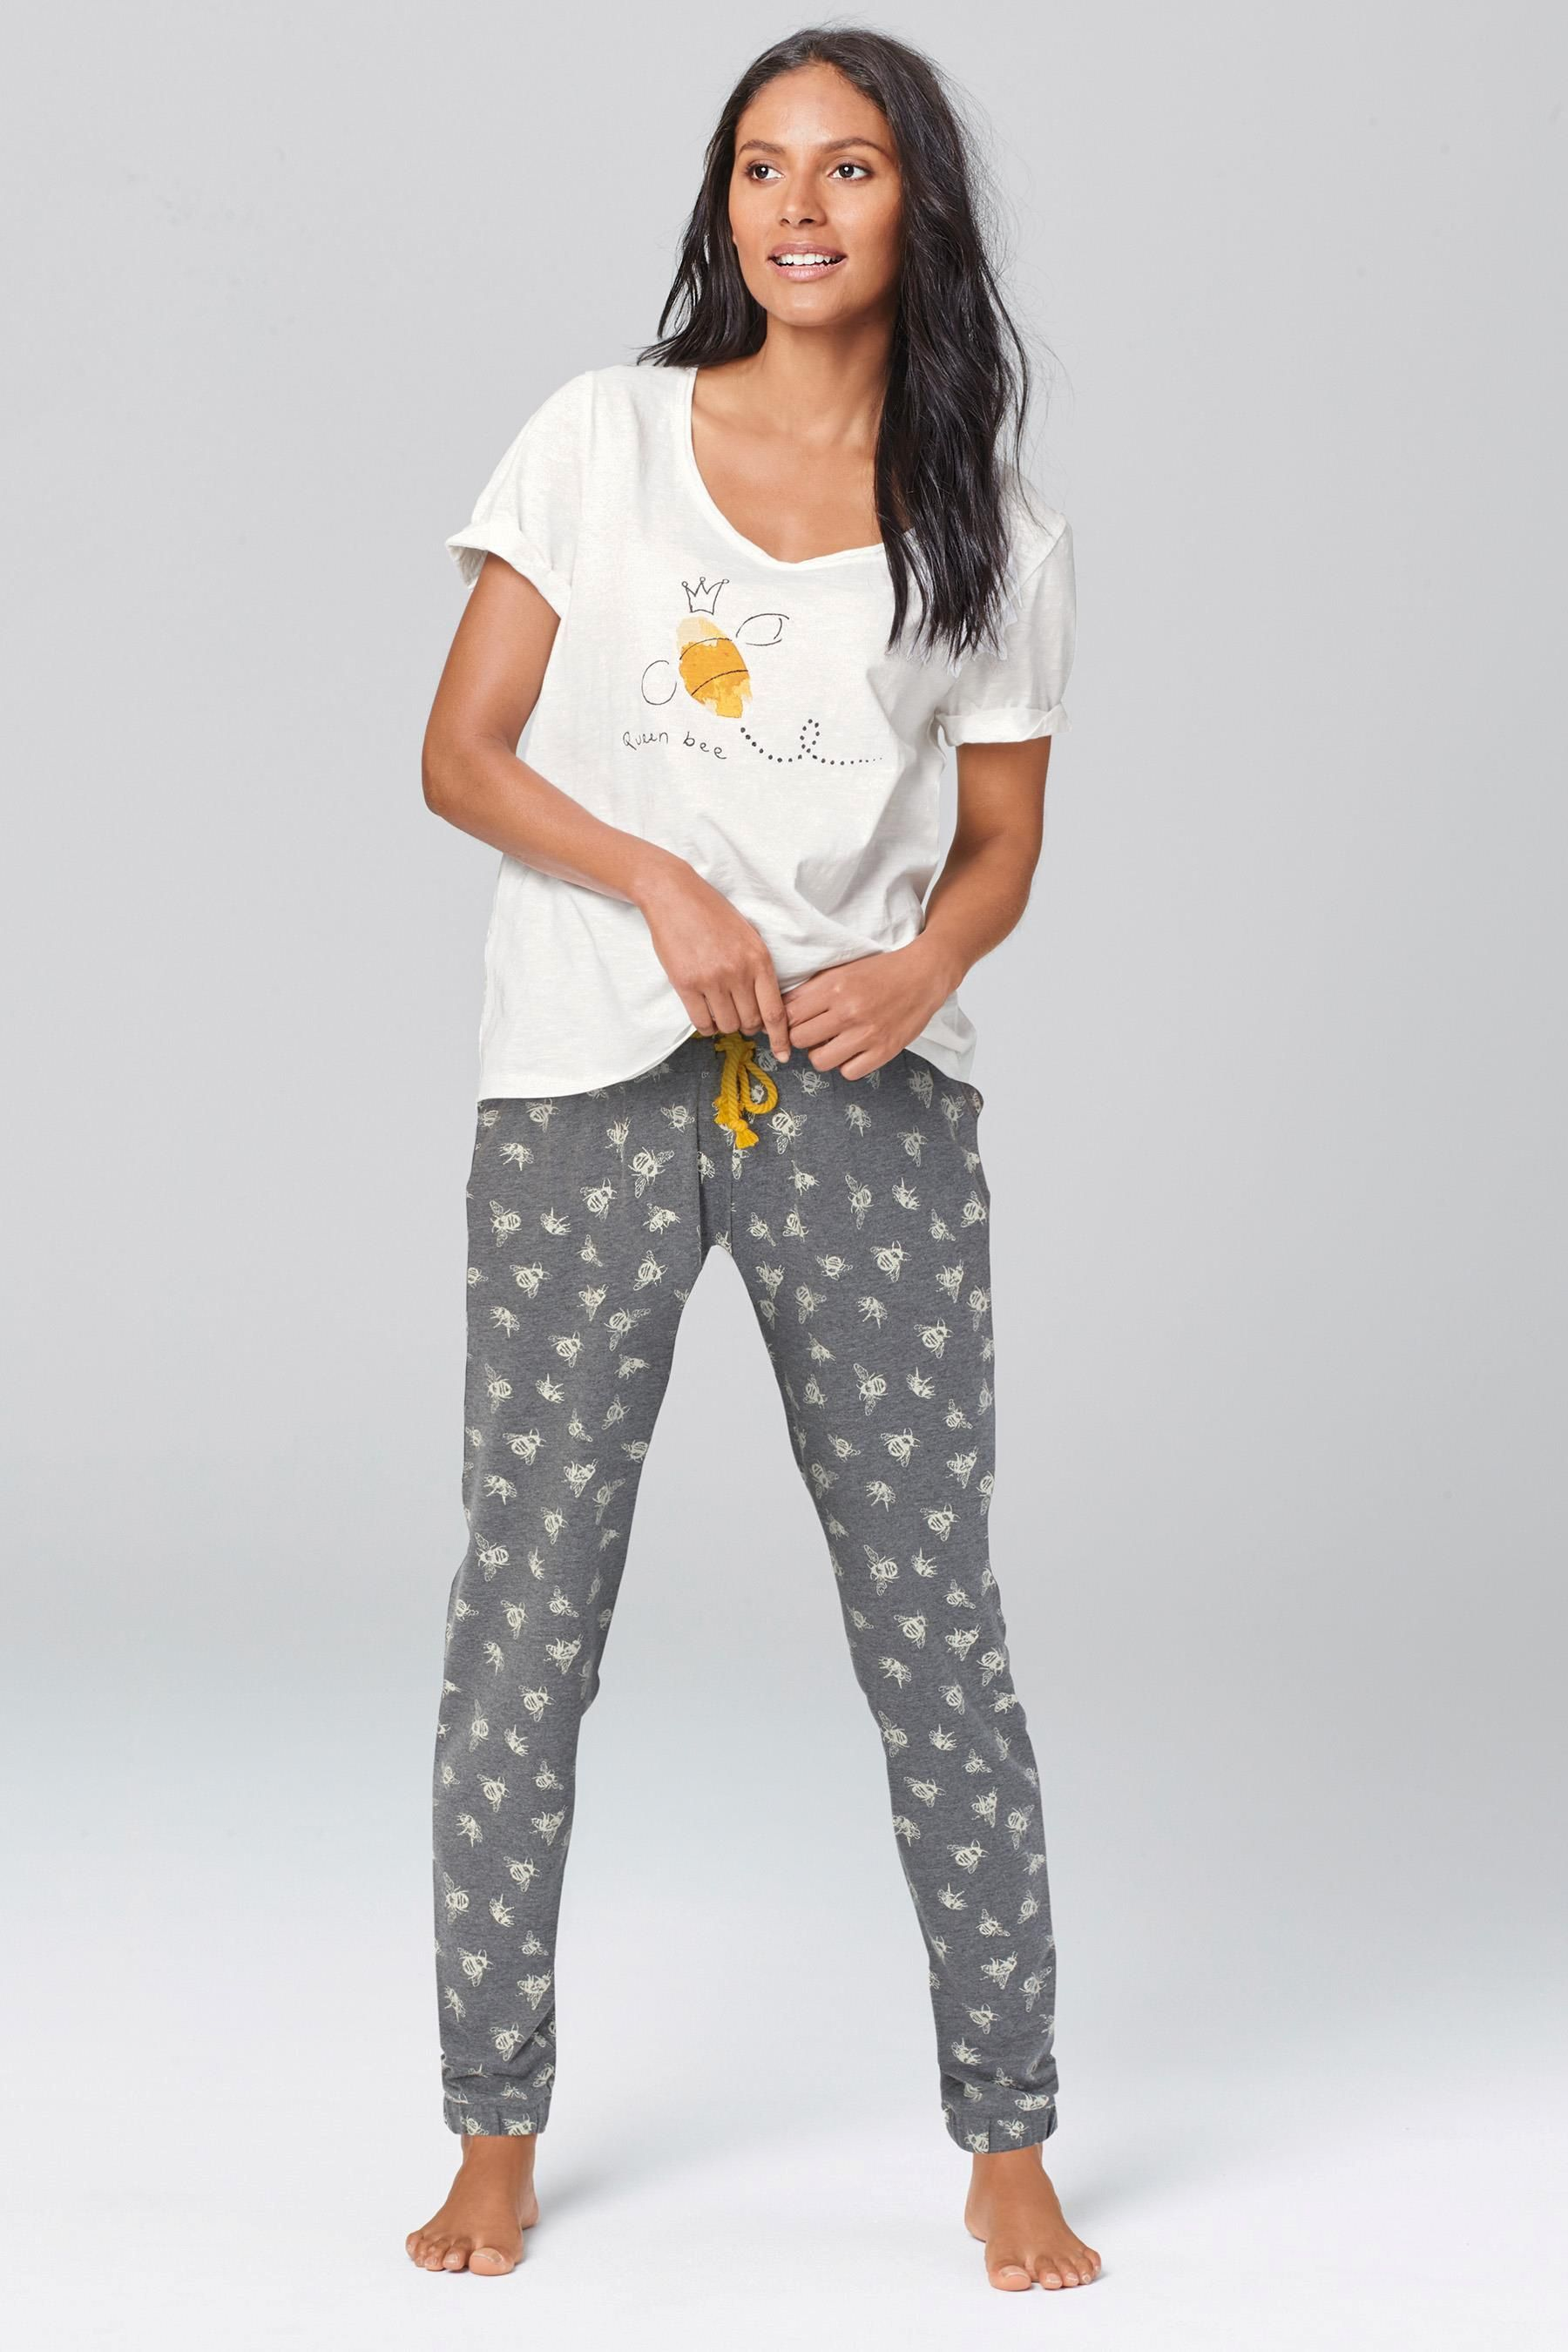 704e6a850d Buy White Bee Print Jersey Pyjamas from the Next UK online shop ...